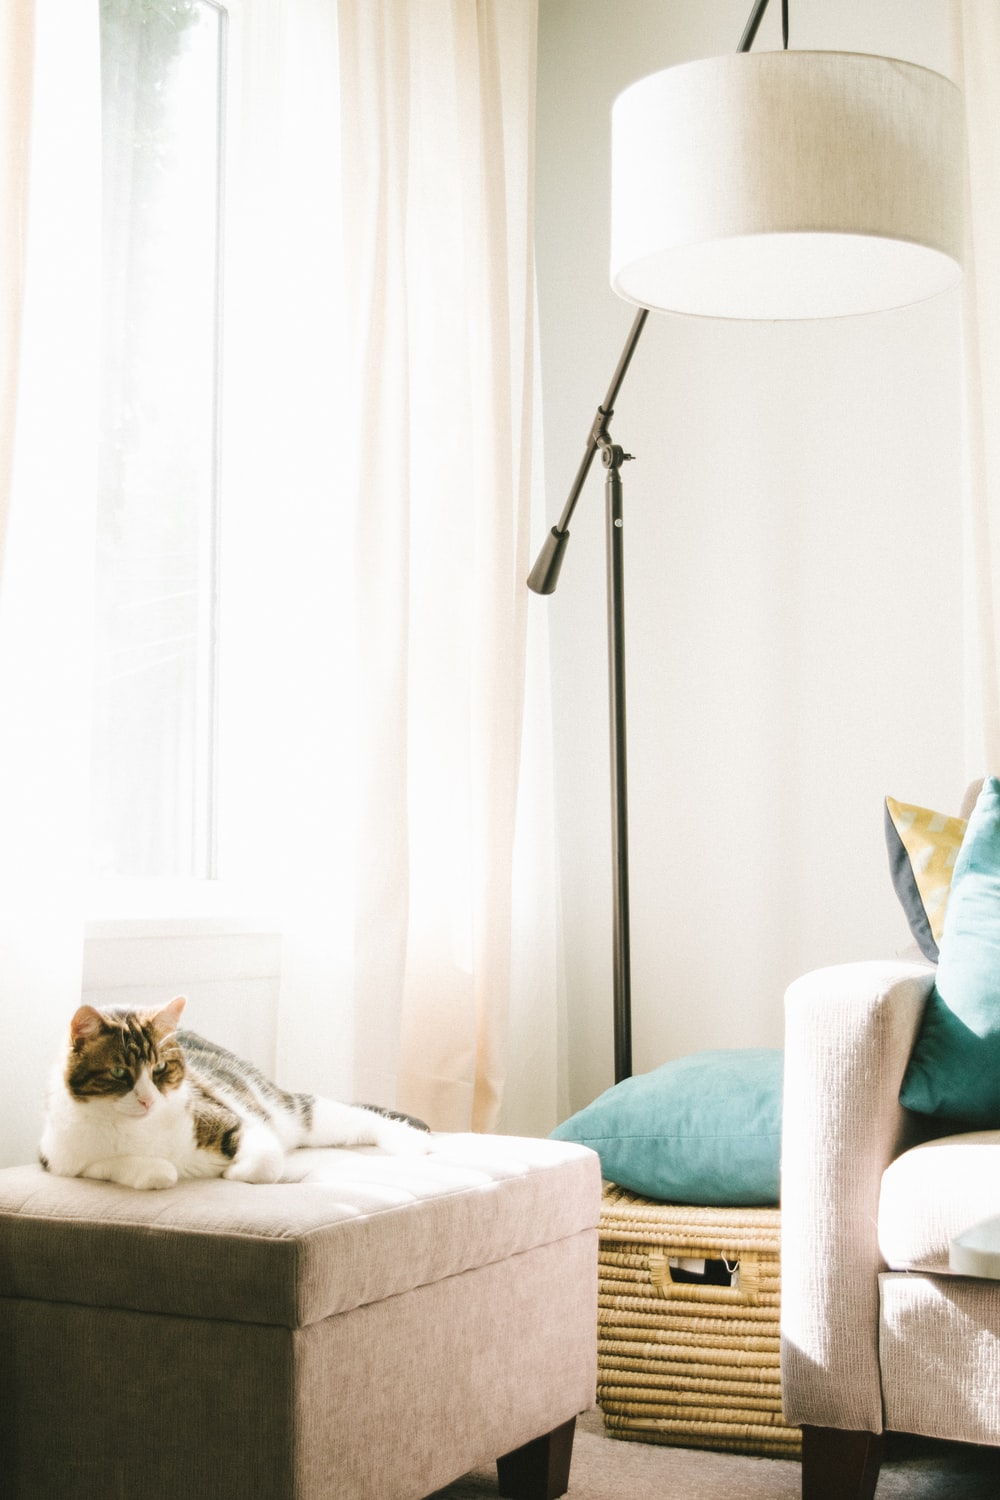 gray and white cat lying on brown ottoman near sofa, clothes hamper and floor lamp inside well-lighted room